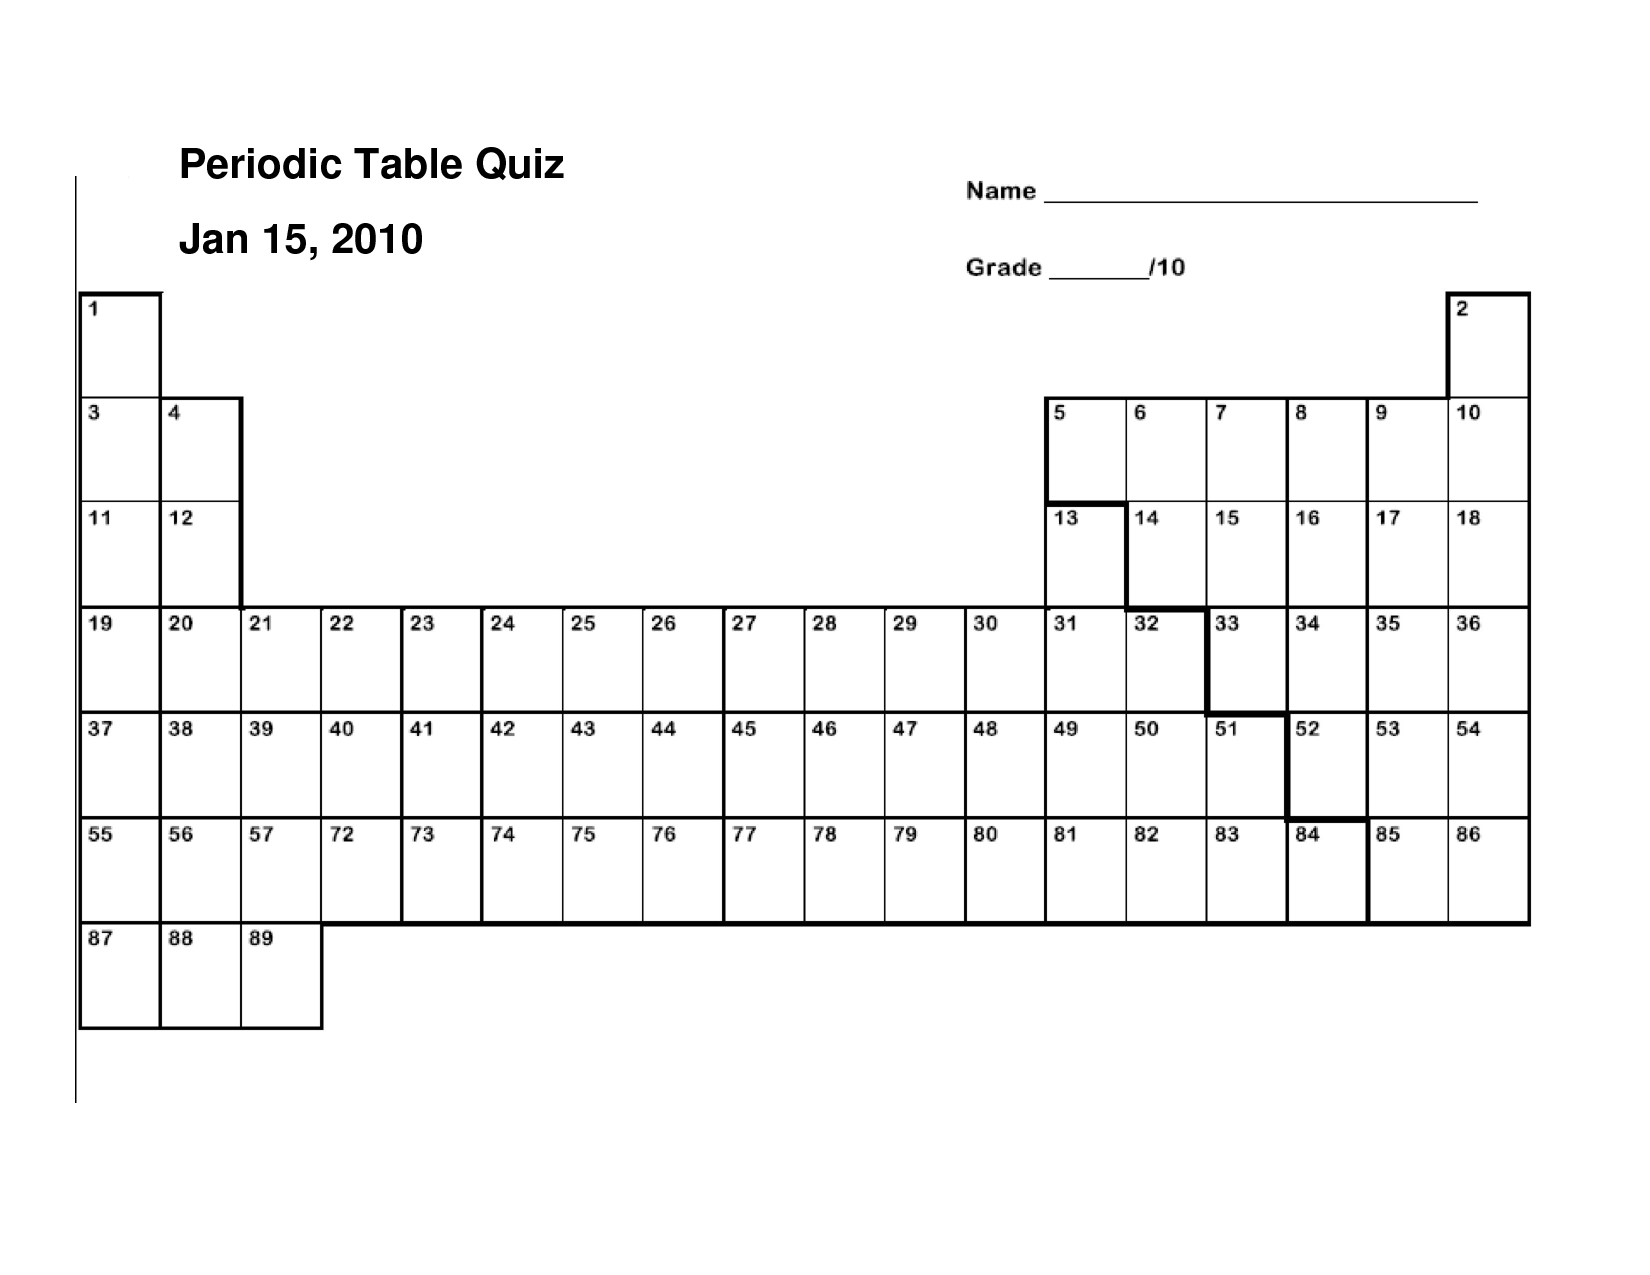 Periodic Table Fill In The Blank Worksheet Periodic Table Fill In The Blank Worksheet